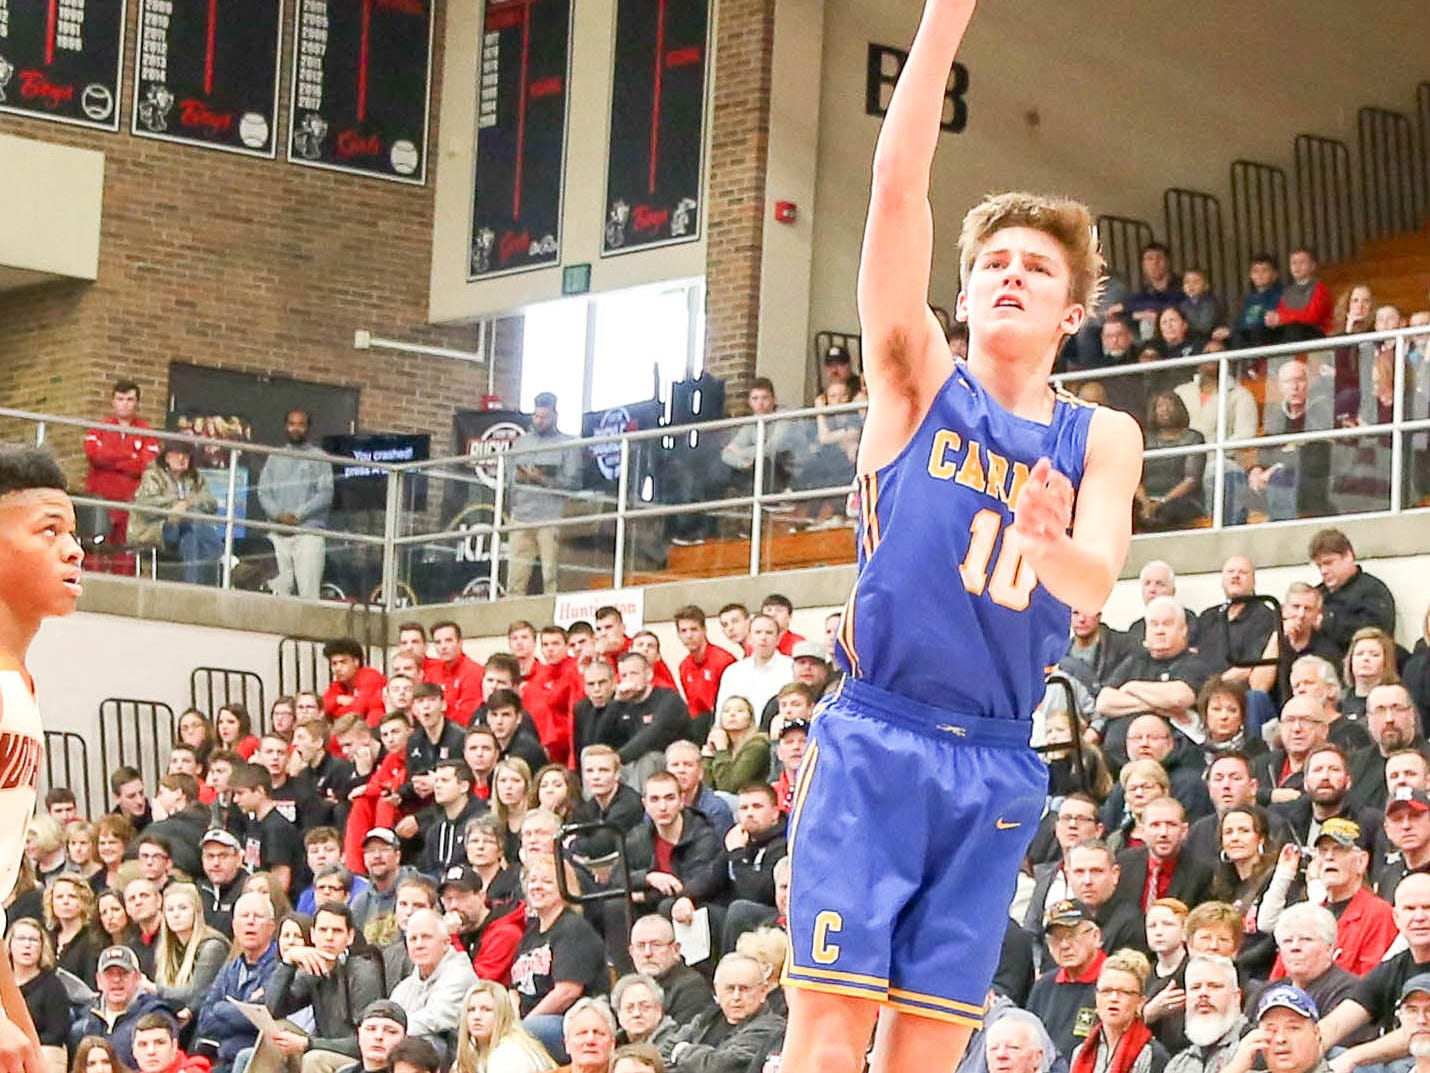 Carmel's Pete Suder (10) up for the long jump shot during the first half of Carmel vs. Fort Wayne Northrop High School in the IHSAA Varsity Boys Regional Semifinals held at Logansport High School, March 9, 2019.